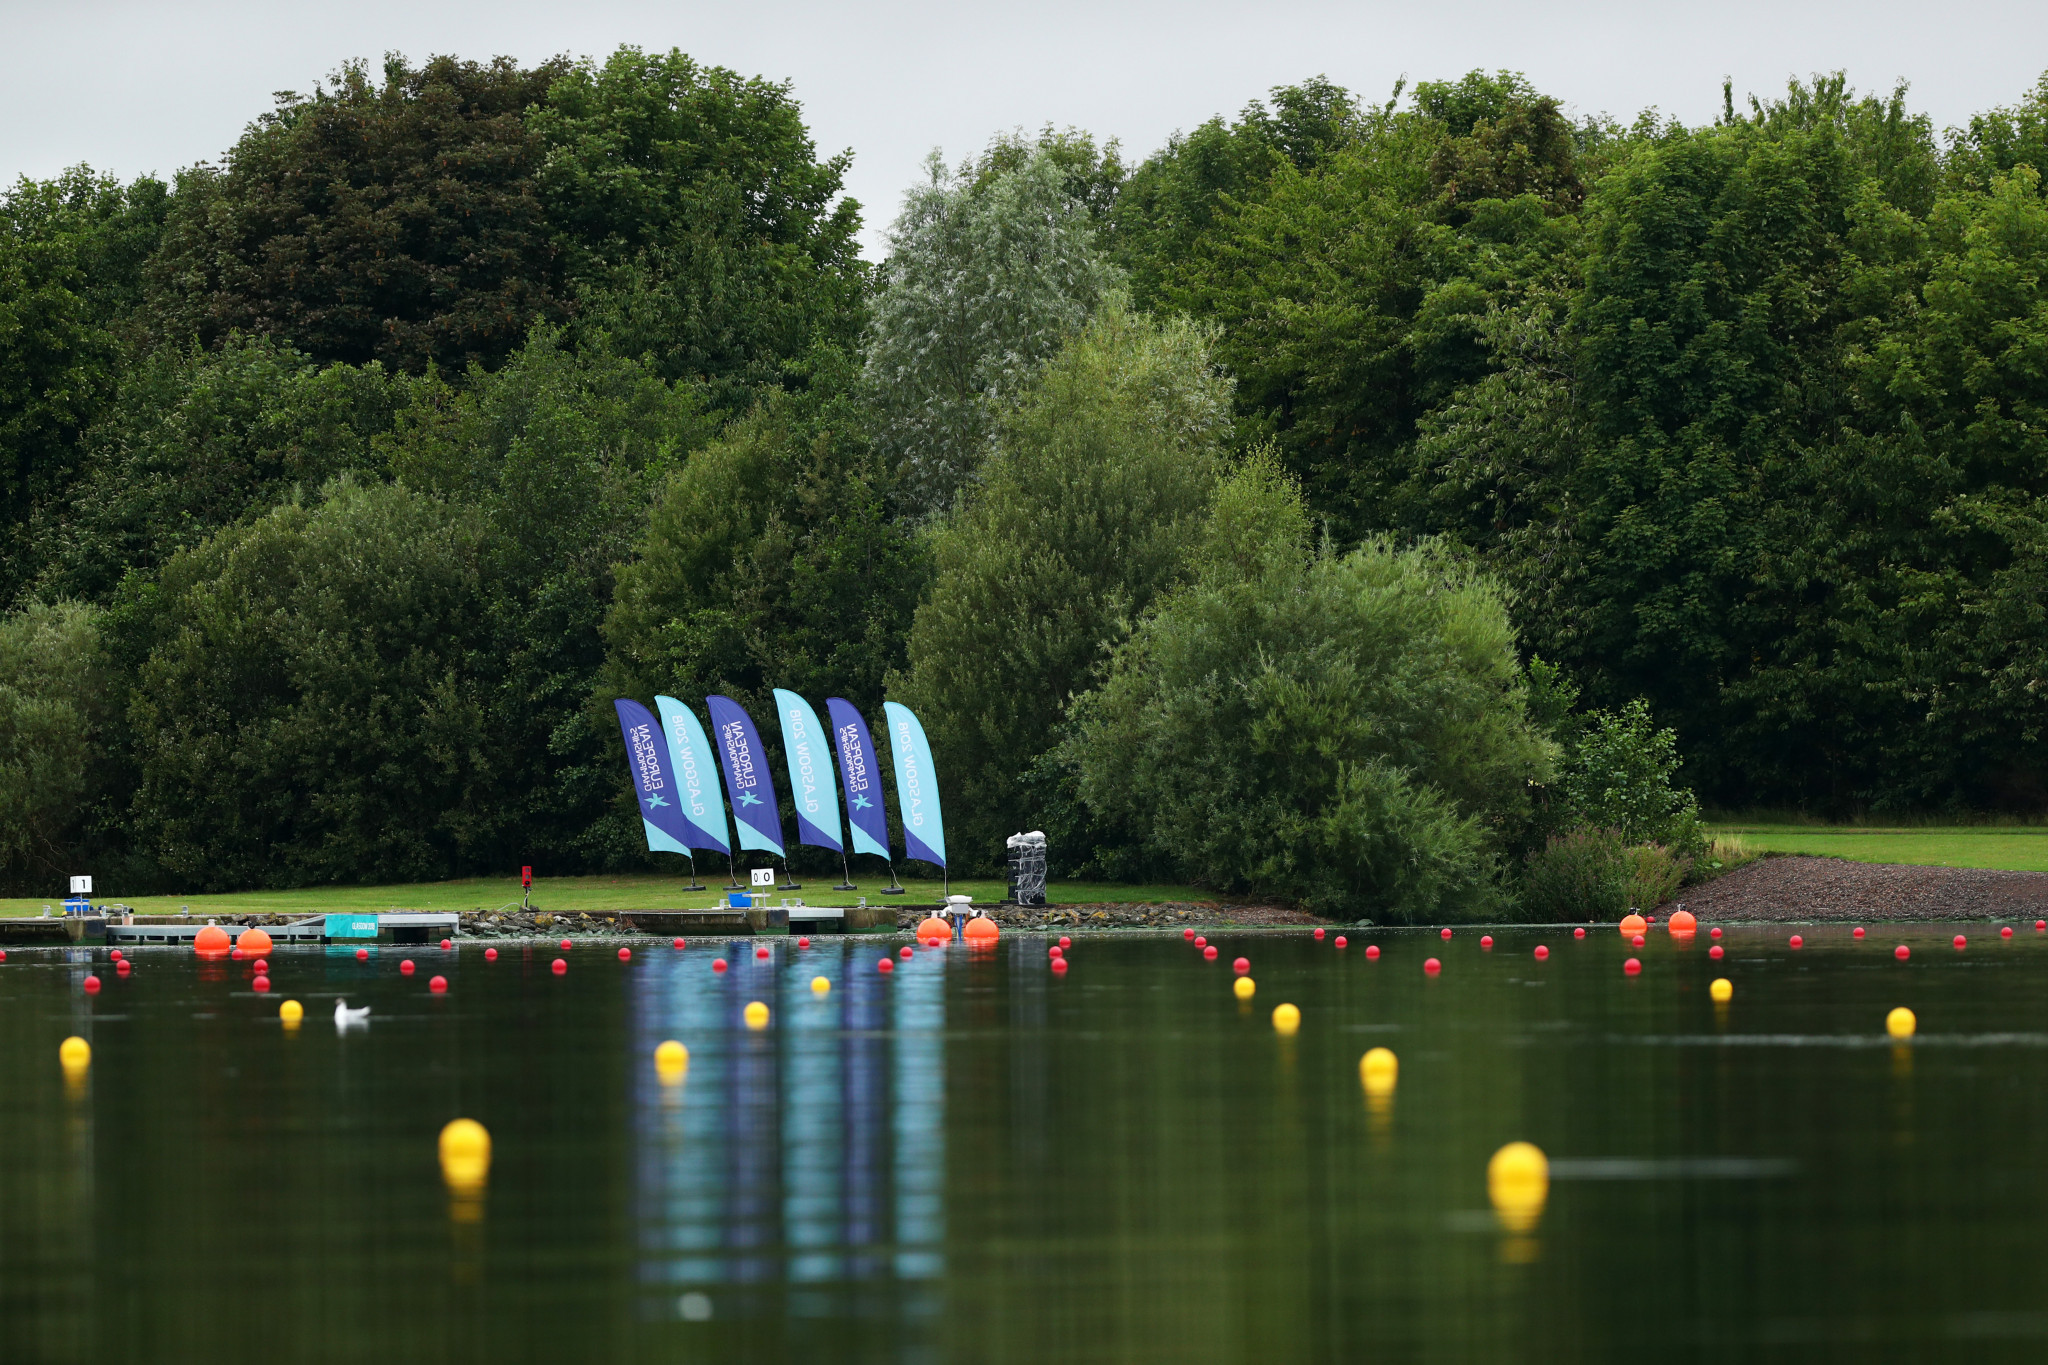 Mixed fortunes for favourites in rowing heats at European Championships in Glasgow